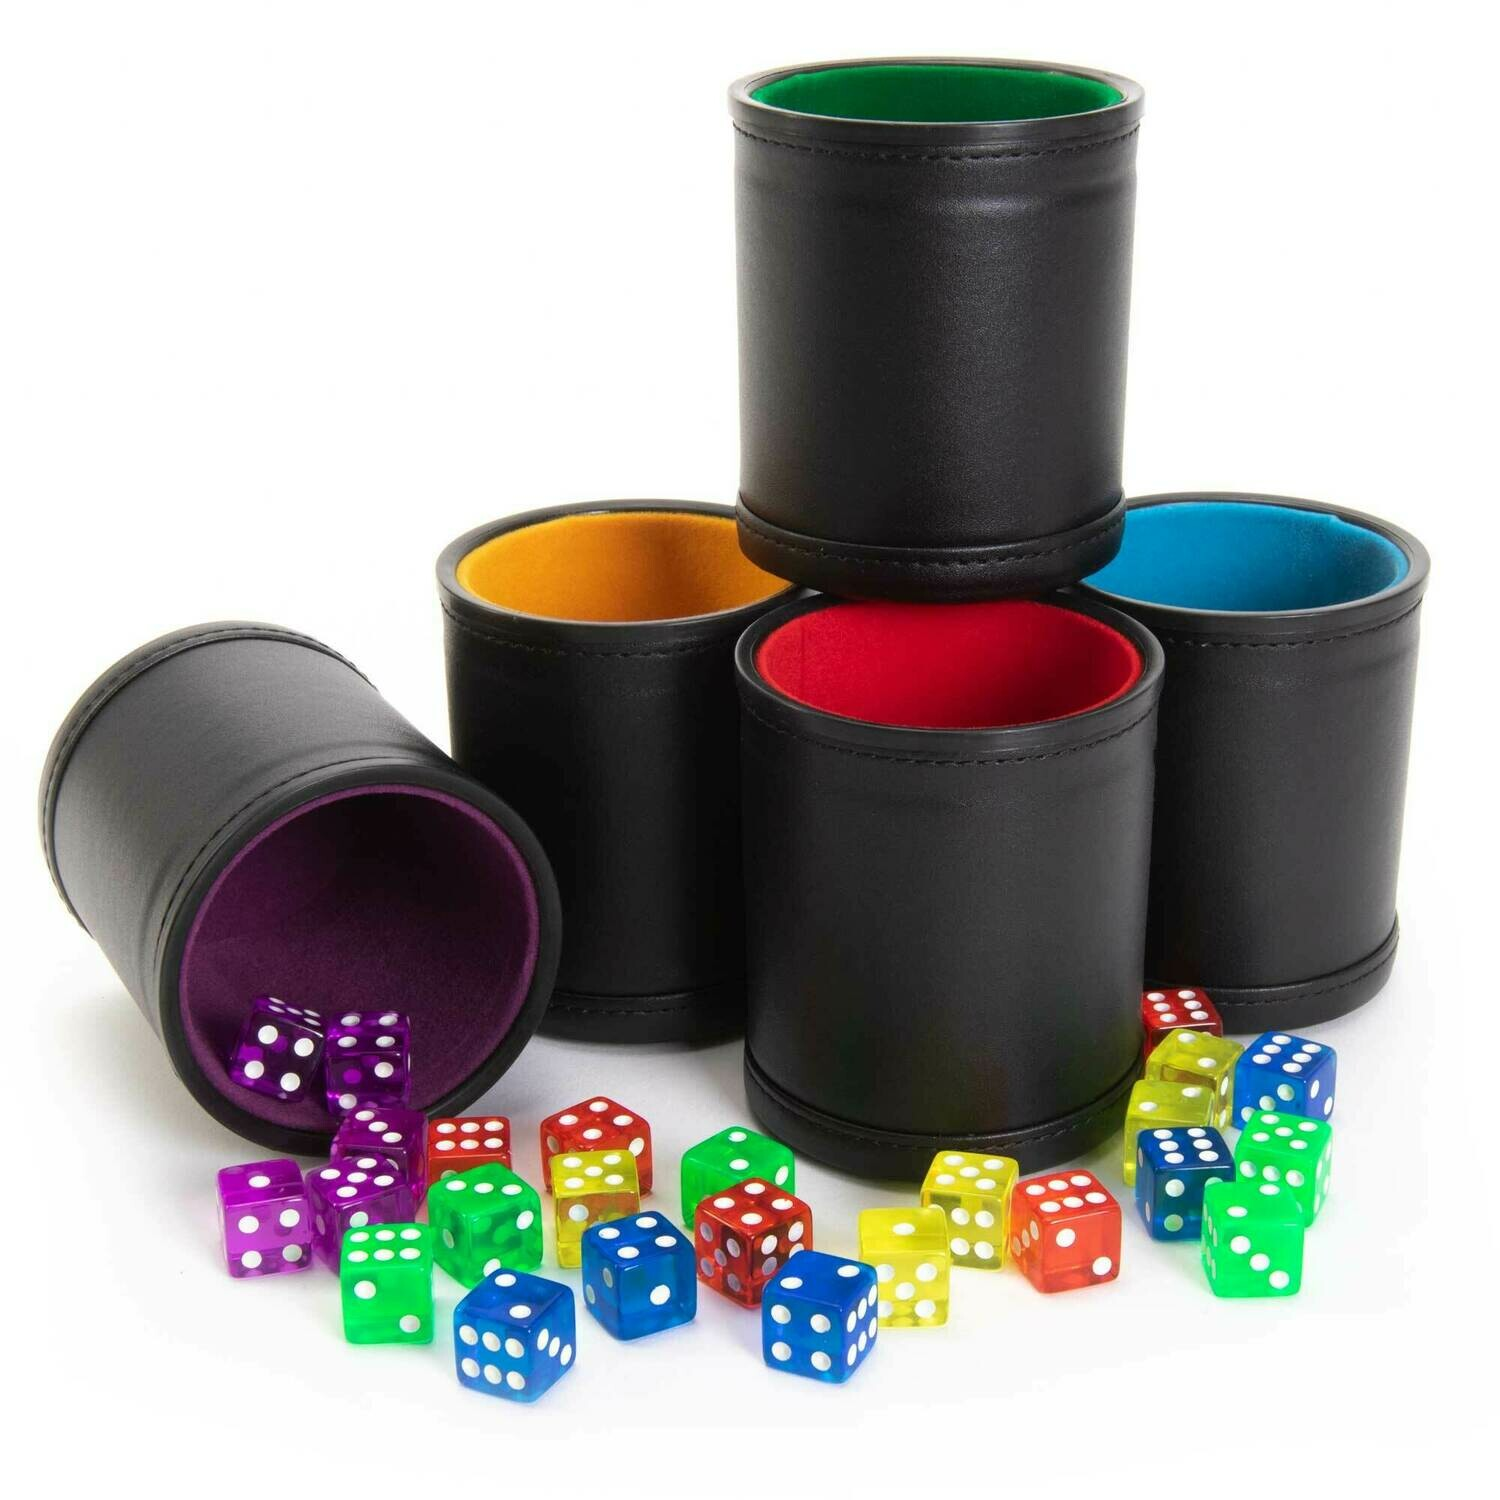 Professional Dice Cups Game Night Pack, Assorted Colors 5-pk RPG CCG Tabletop